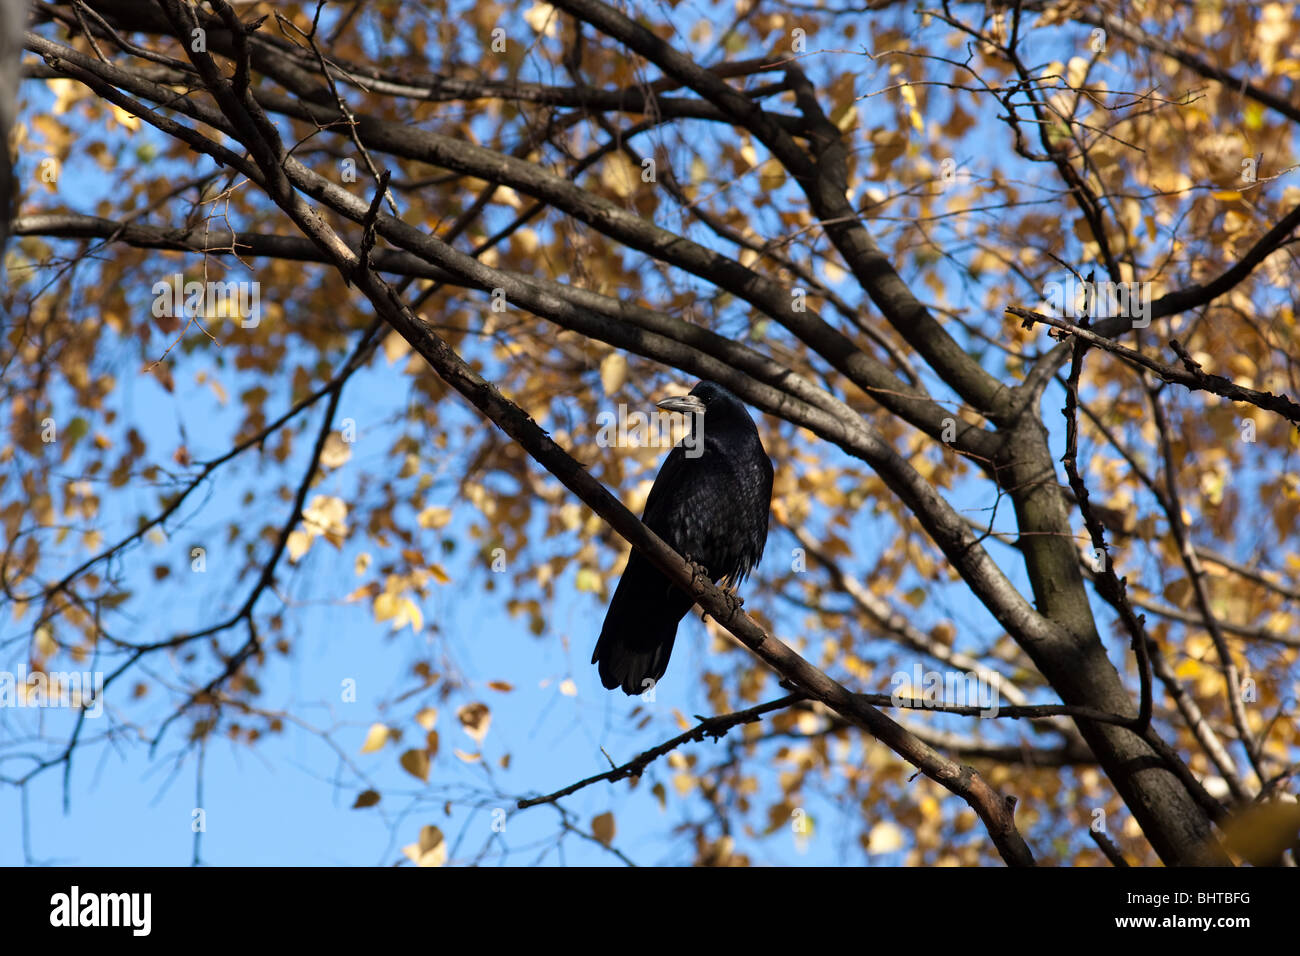 Adult Rook (Corvus frugilegus) in a natural habitat. Wildlife Photography. - Stock Image